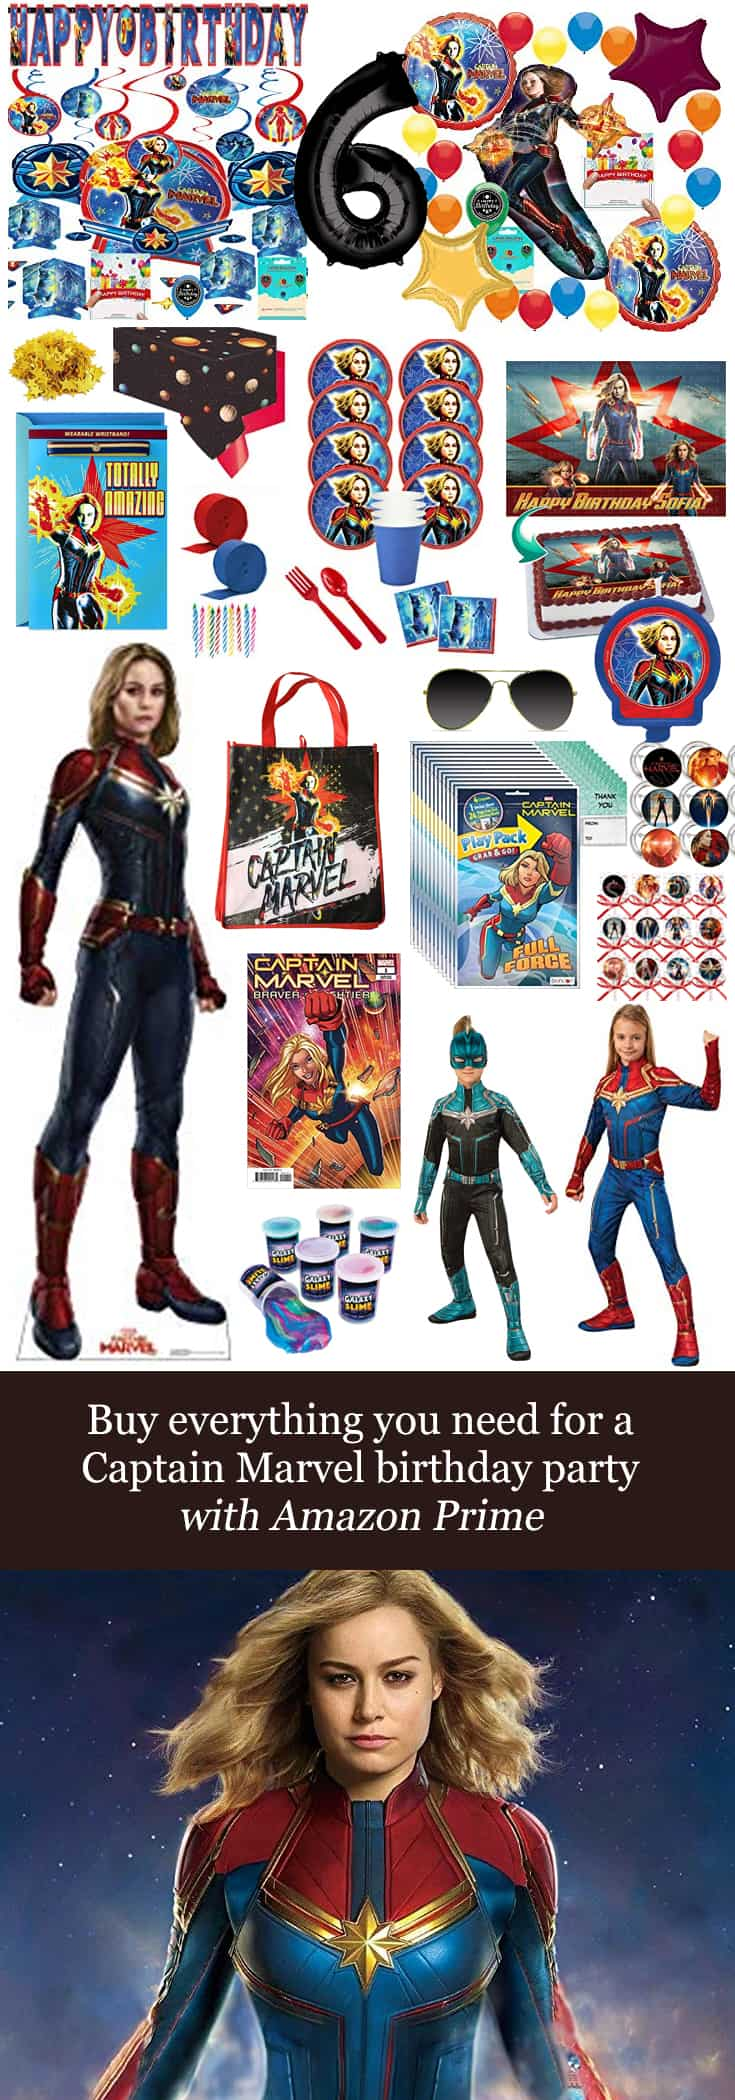 Texas Mom Blogger, Kiss My Tulle, shares how you can buy everything you need for a #CaptainMarvel #birthday #party with #AmazonPrime!